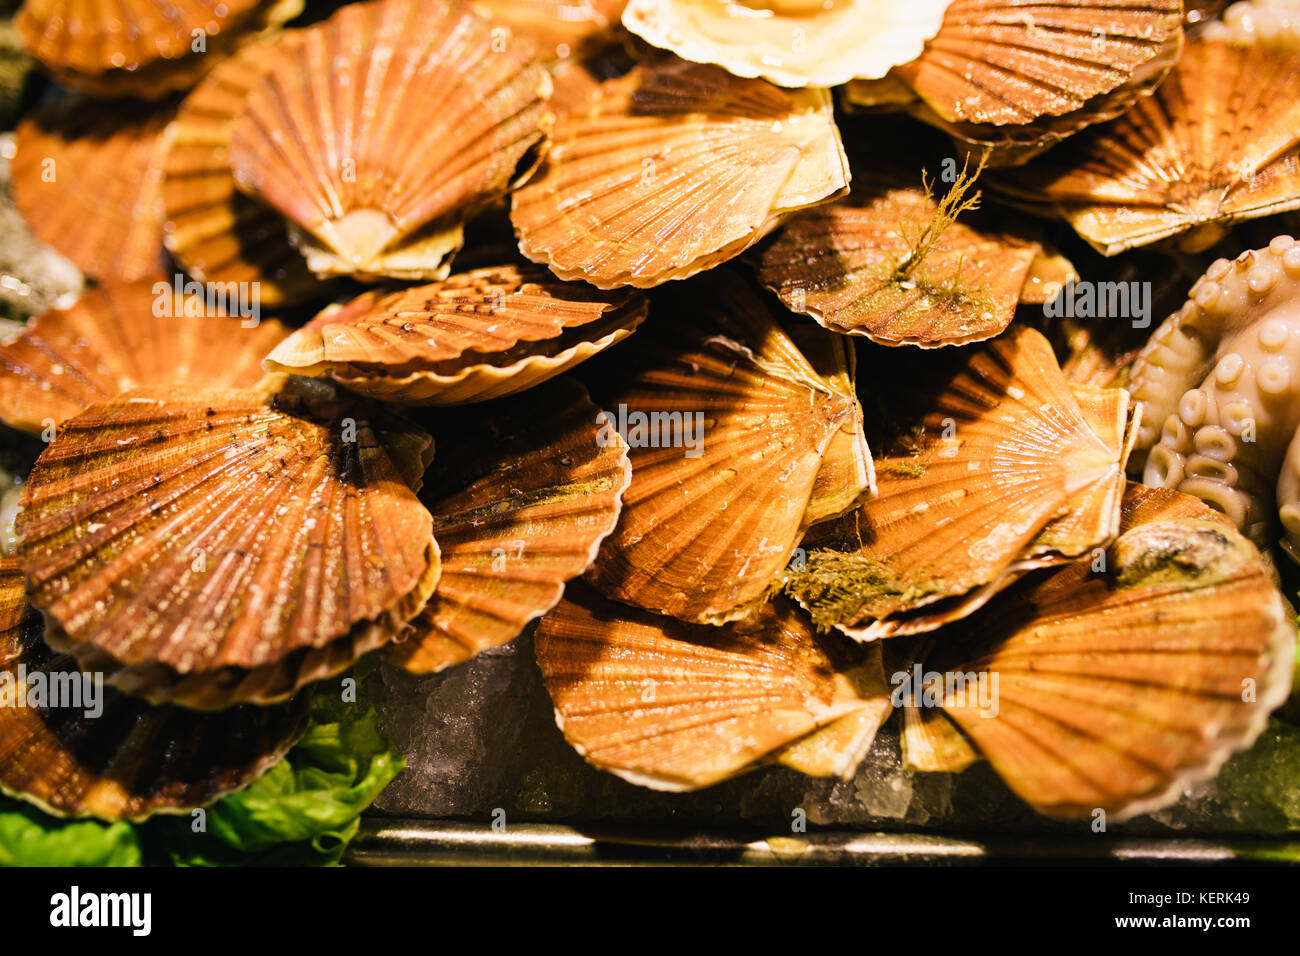 Fresh scallops seafood assortment at the fish market. Toned - Stock Image